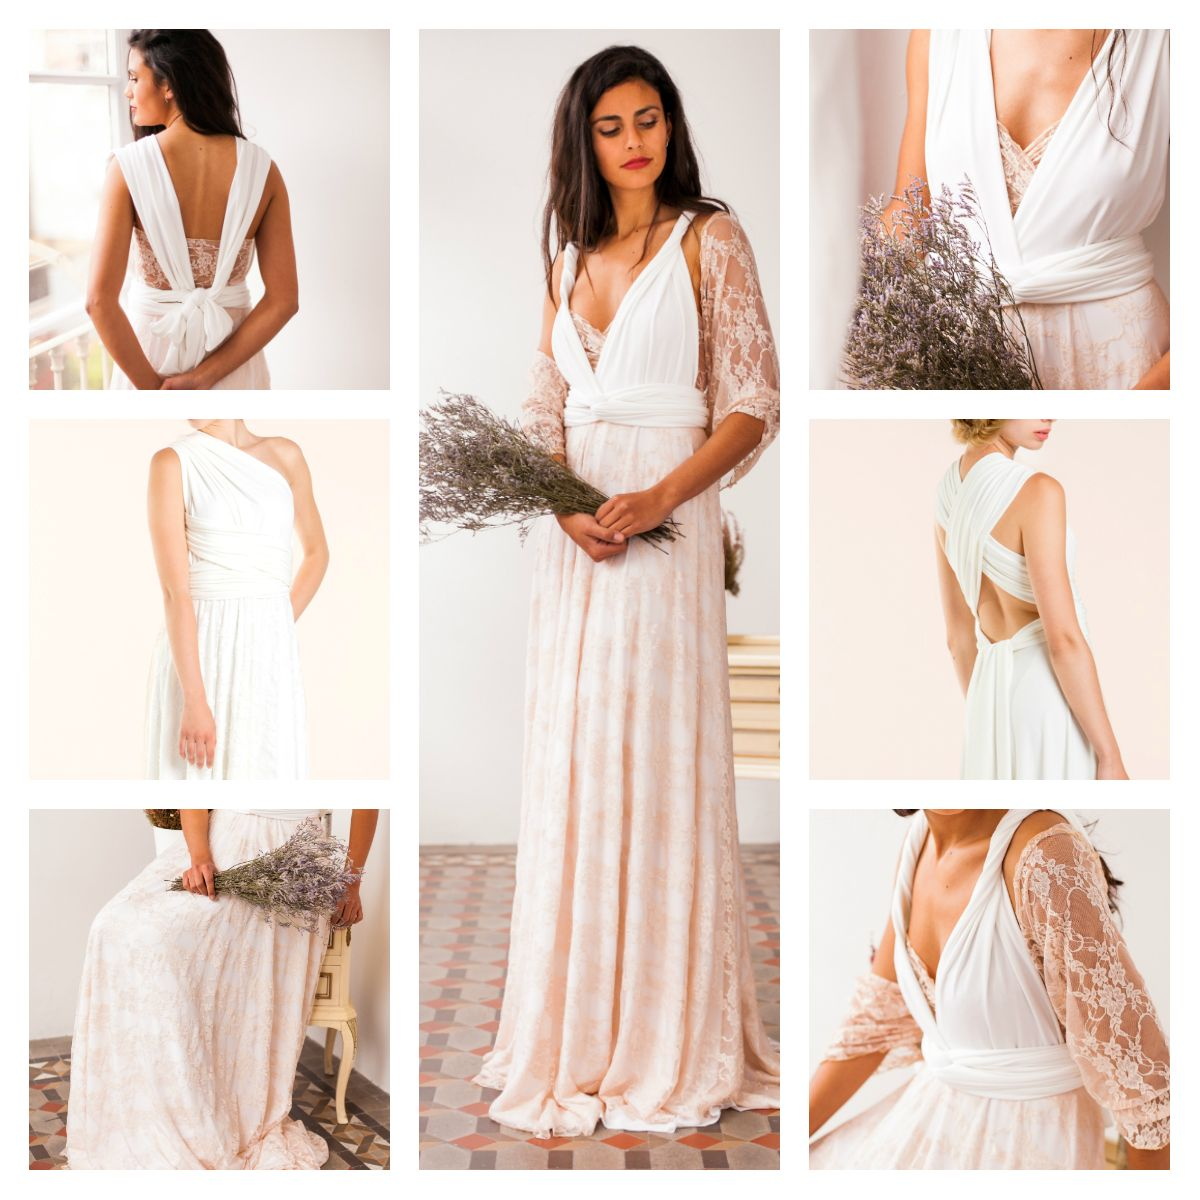 Great Alfred Angelo Signature Wedding Dress The Knot